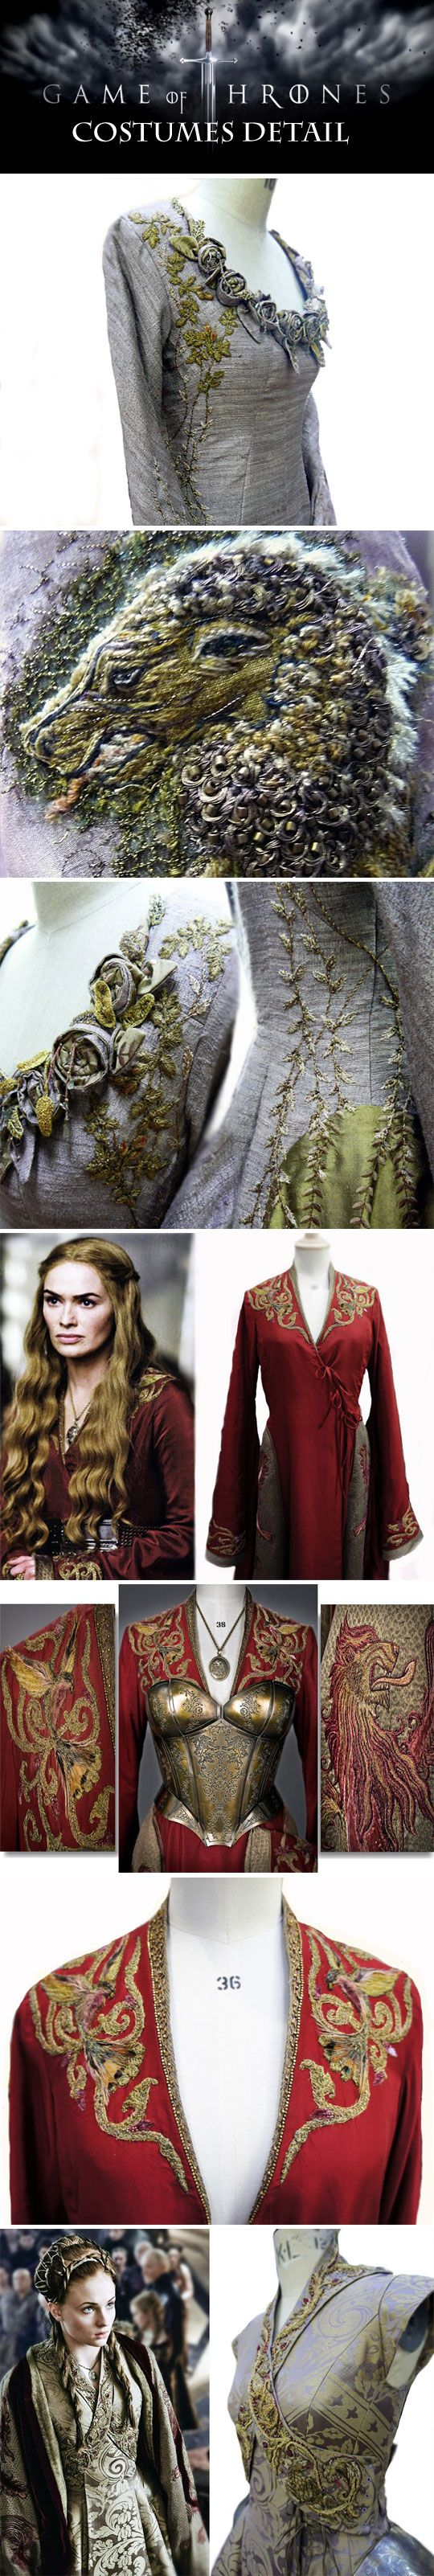 25 best ideas about jorah game of thrones on pinterest game of - Game Of Thrones Costumes Detail